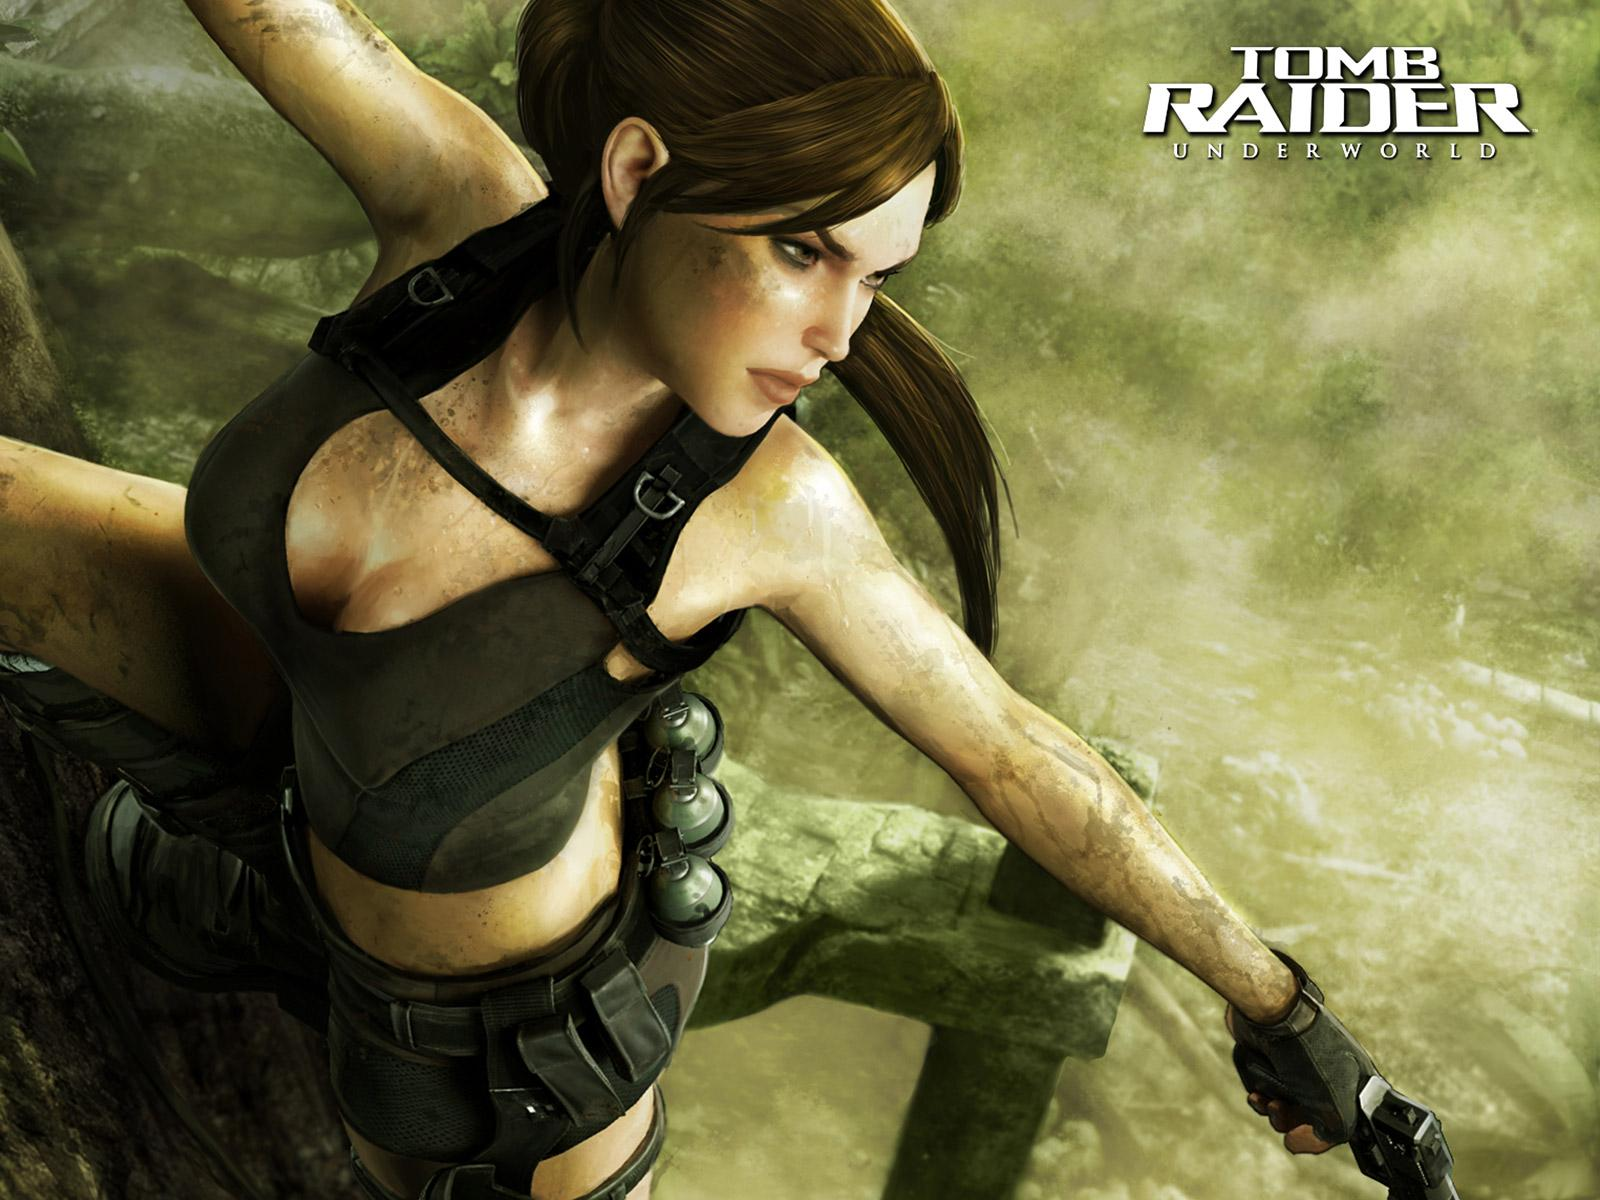 hd tomb raider underworld 3. Black Bedroom Furniture Sets. Home Design Ideas